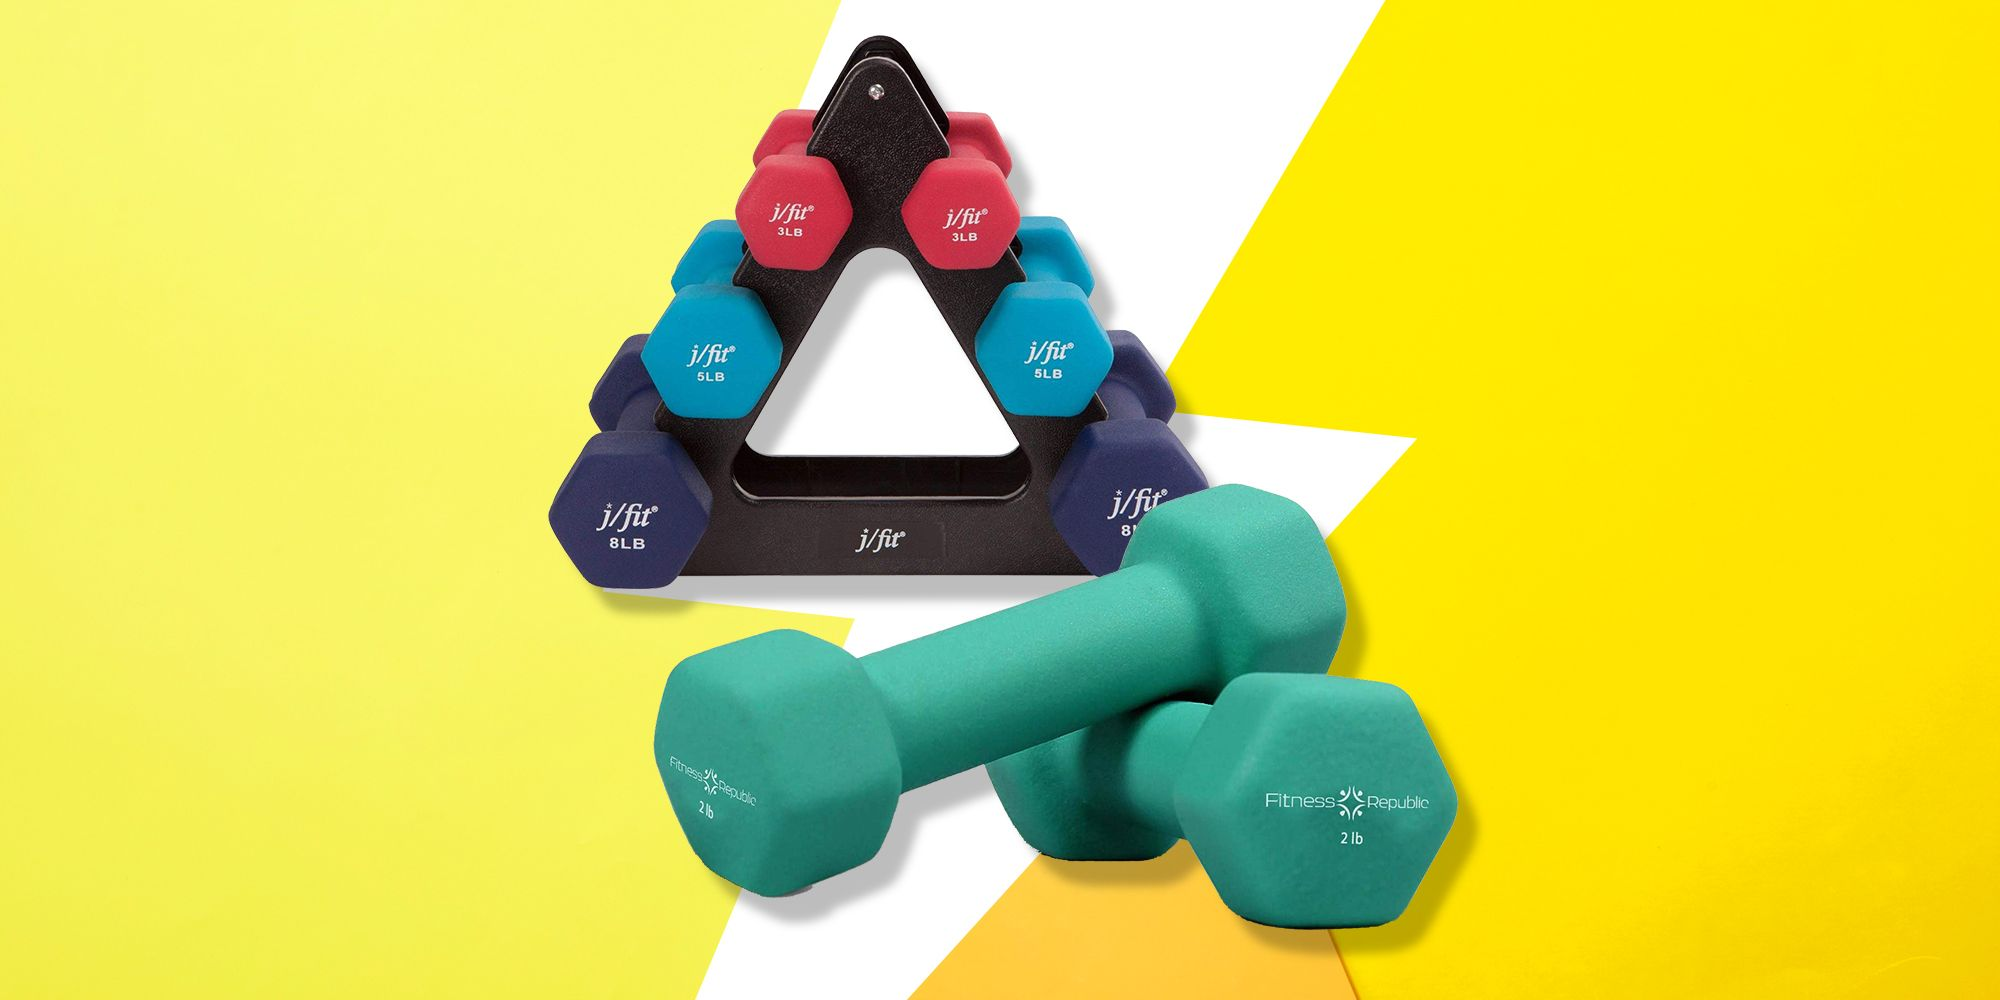 2 PACK NEOPRENE DUMBBELL 2 Lb Workout Fit Gym Fitness Weight Lifting Dumbbells